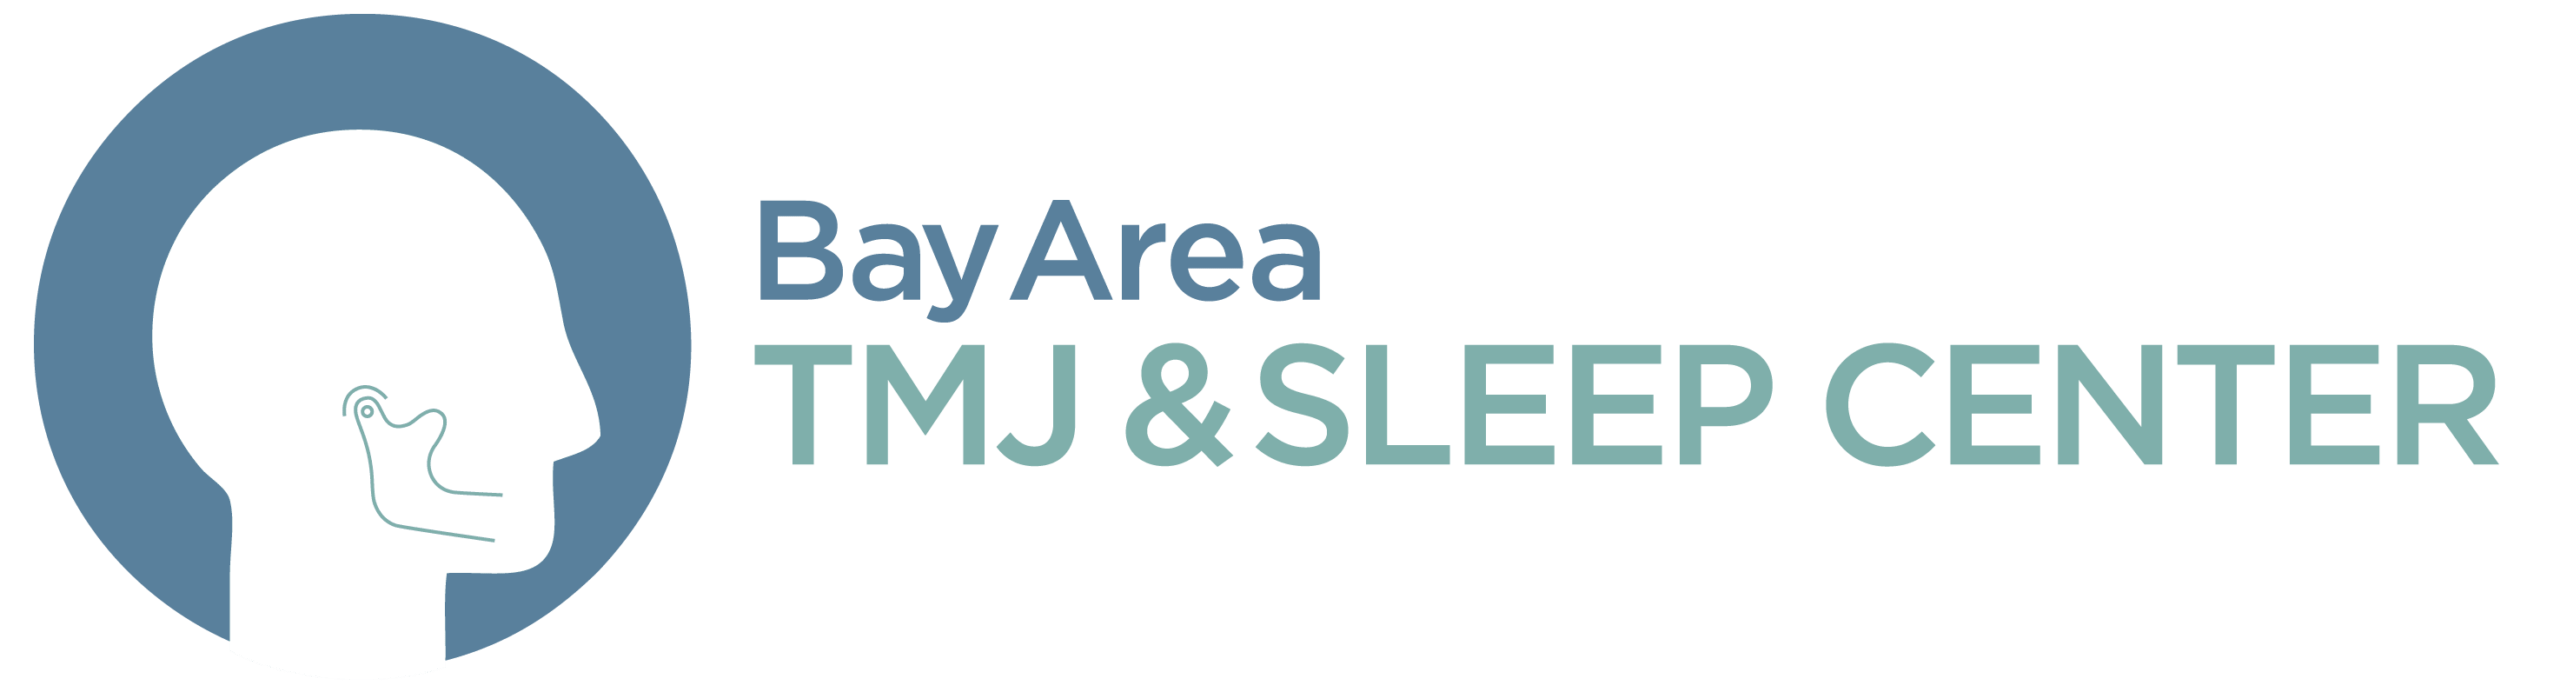 Bay Area TMJ and Sleep Center